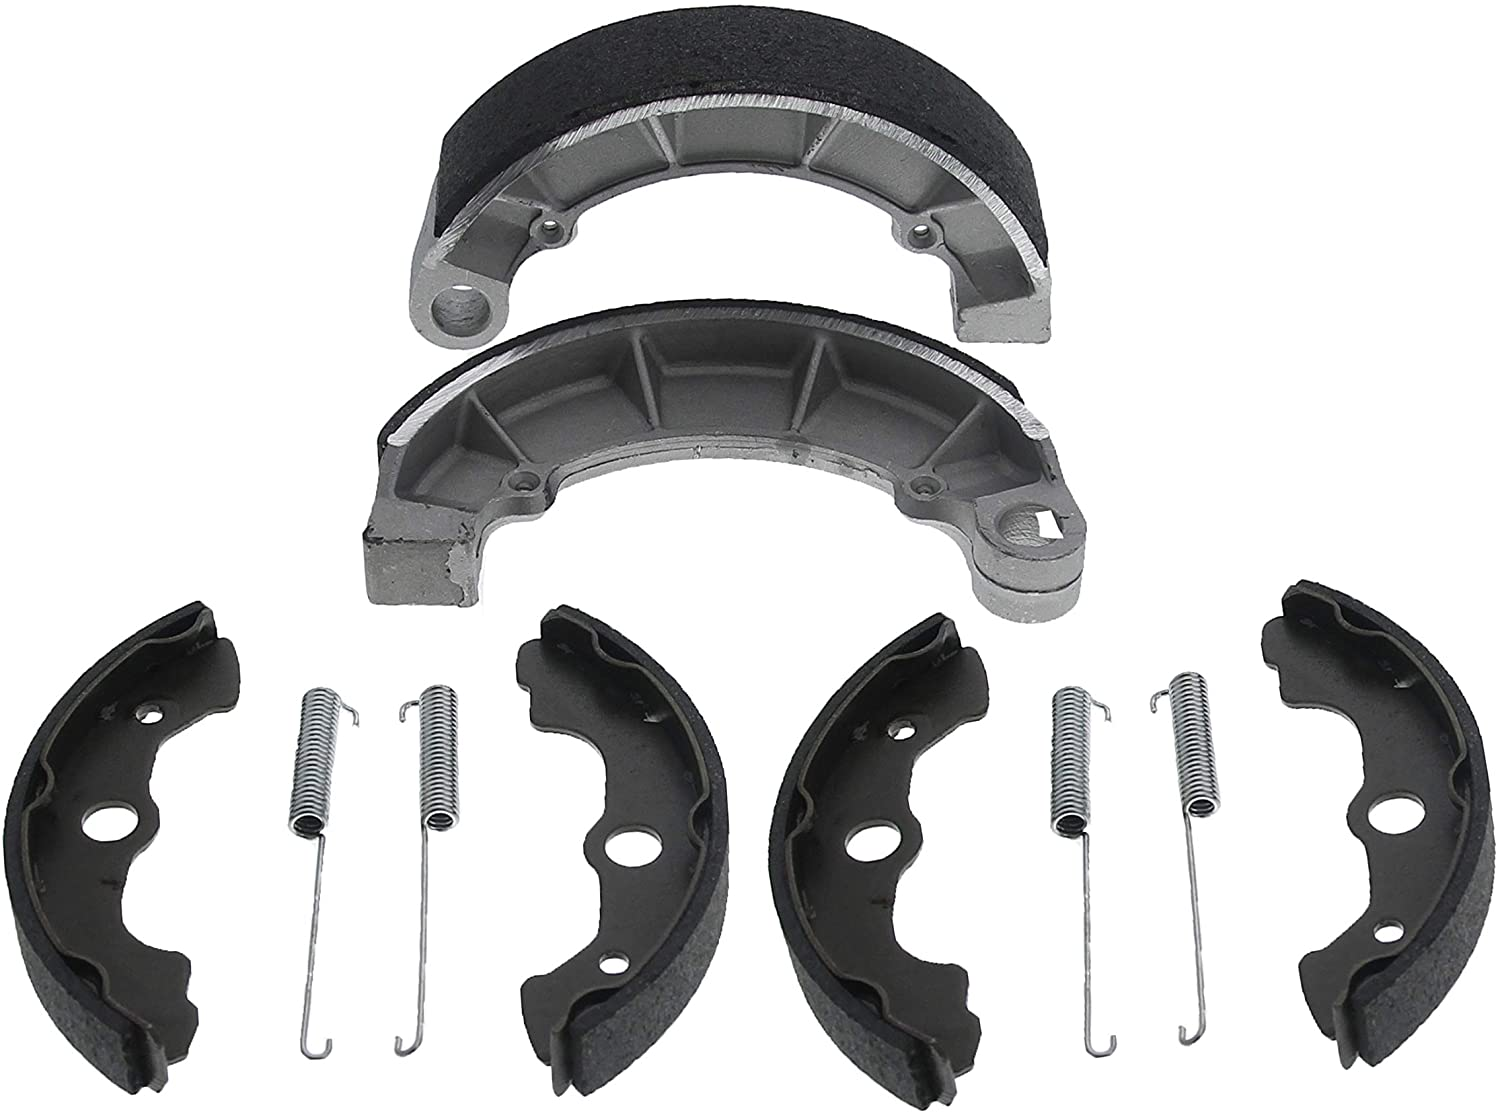 Front and Rear Brake Shoes for 2001-2004 Fits Honda Foreman Rubicon 500 TRX500FA 4x4